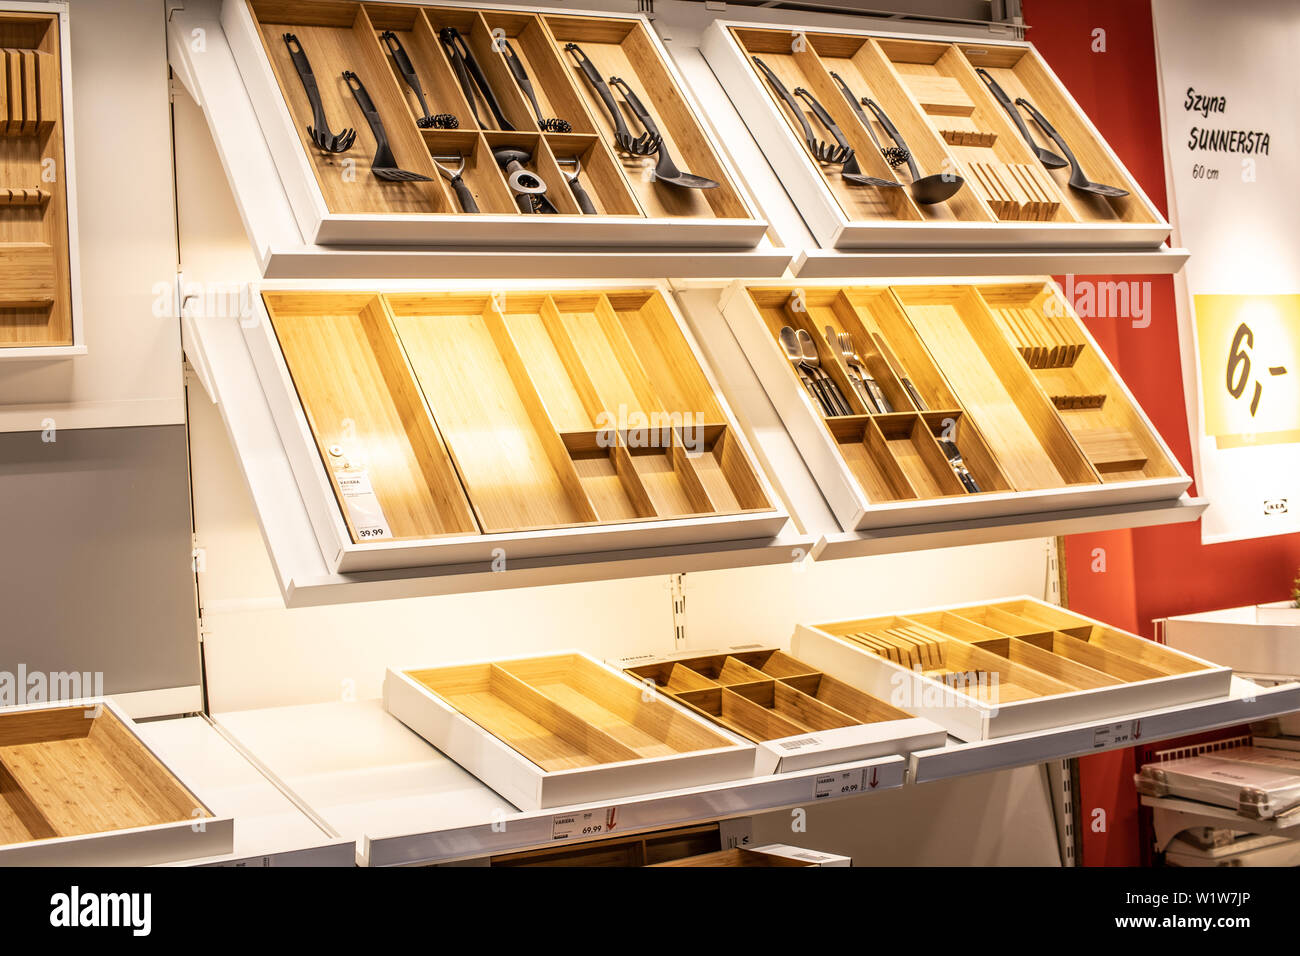 Lodz Poland Jan 2019 Exhibition Interior Ikea Store Cutlery Tray With Modern Cutlery Set Modern Kitchen Equipment Ikea Sells Home Accessories Stock Photo Alamy